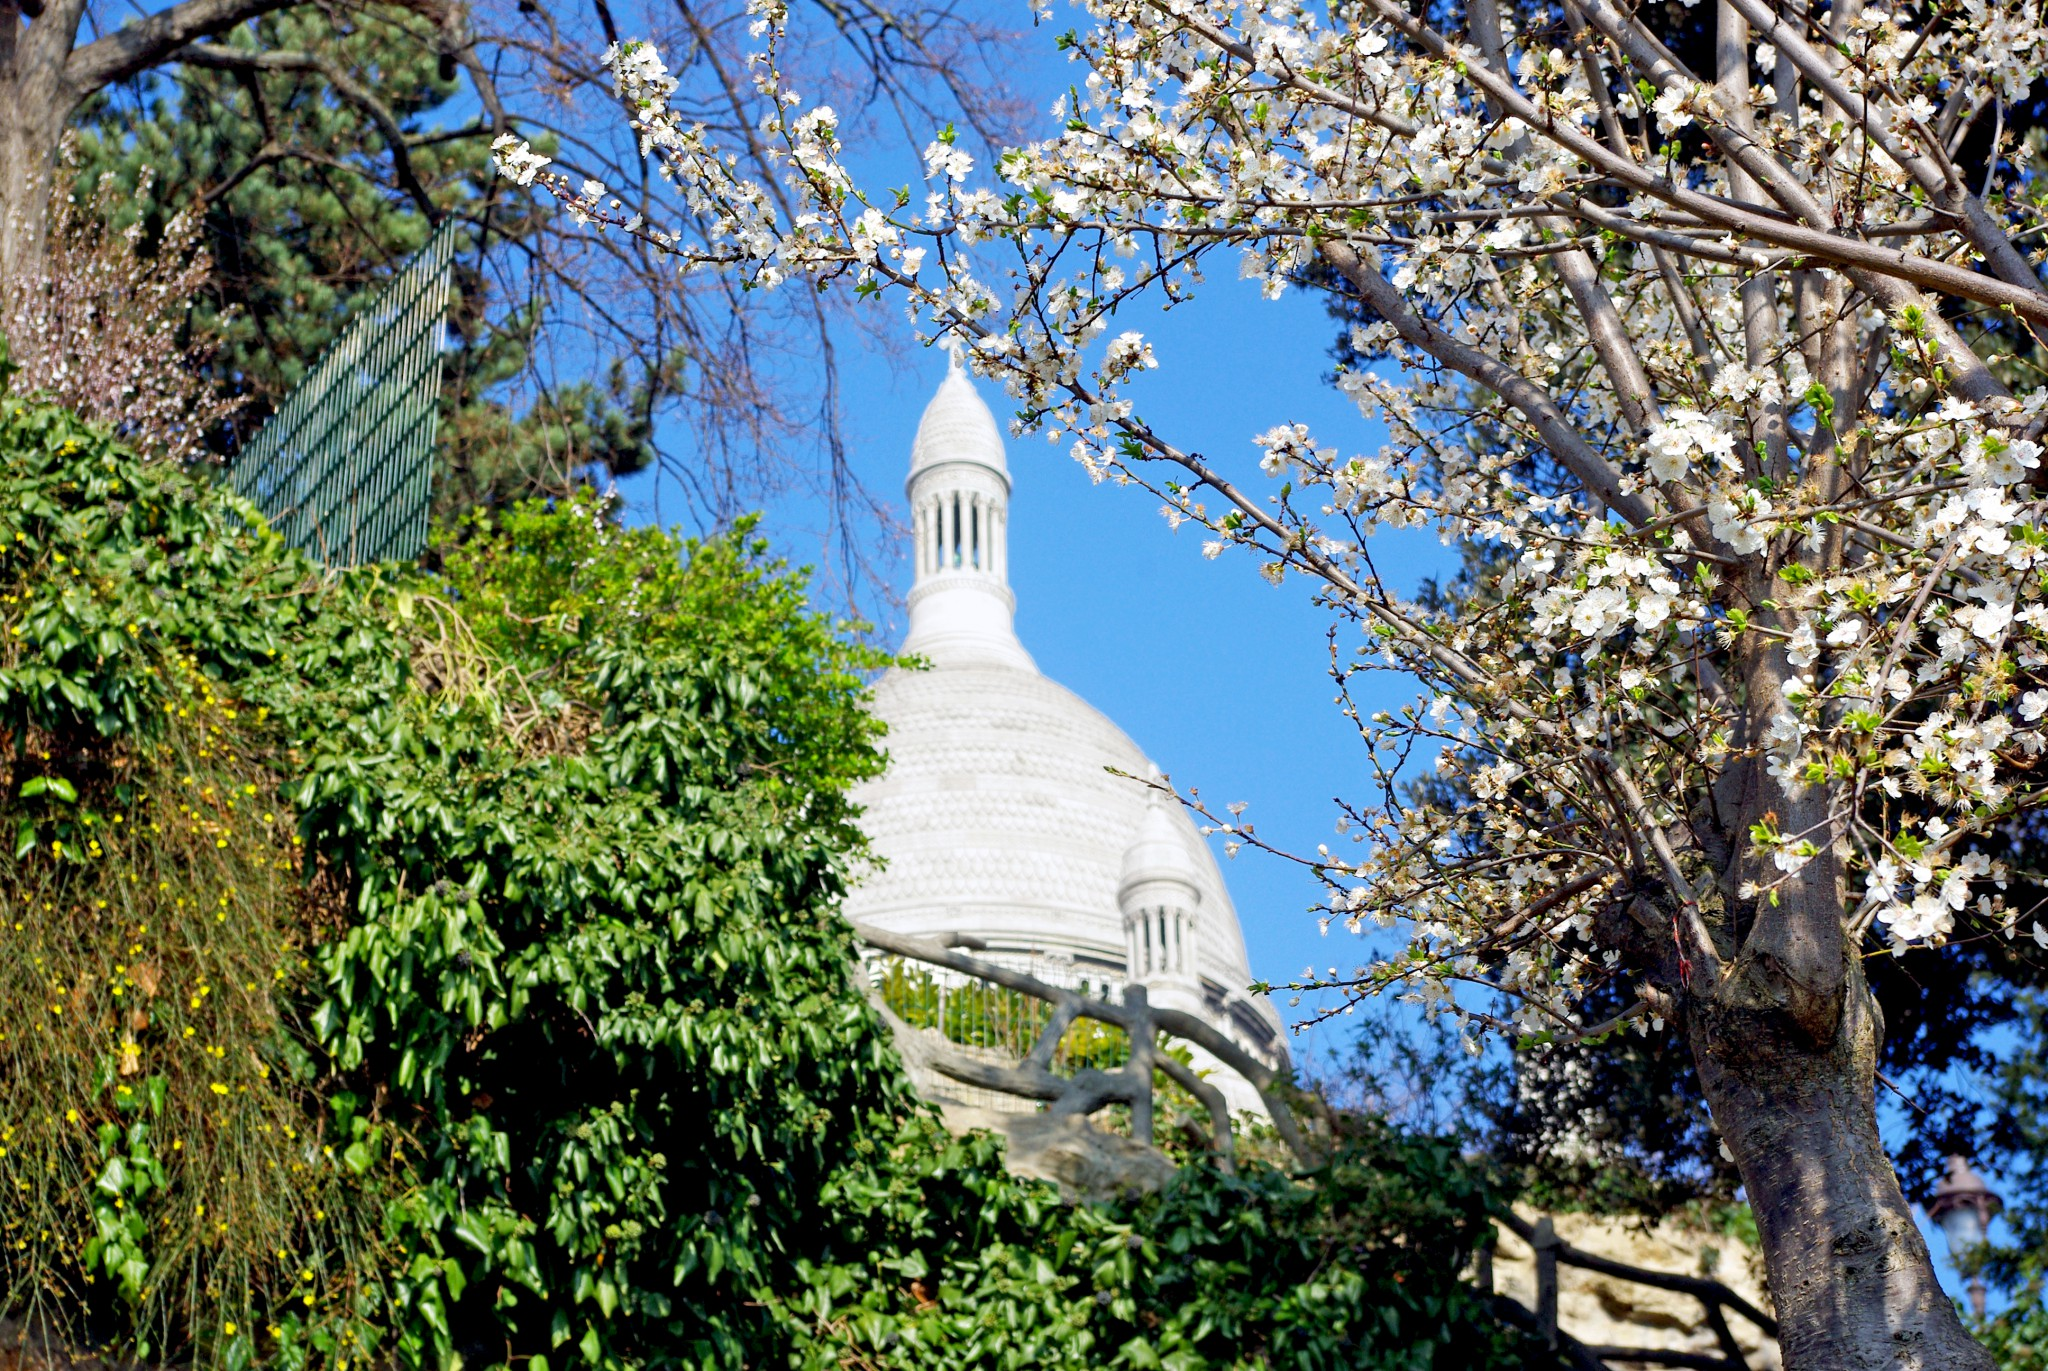 Tree in bloom in Square Louise Michel in Montmartre with the white dome of Sacré-Cœur in the distance © French Moments